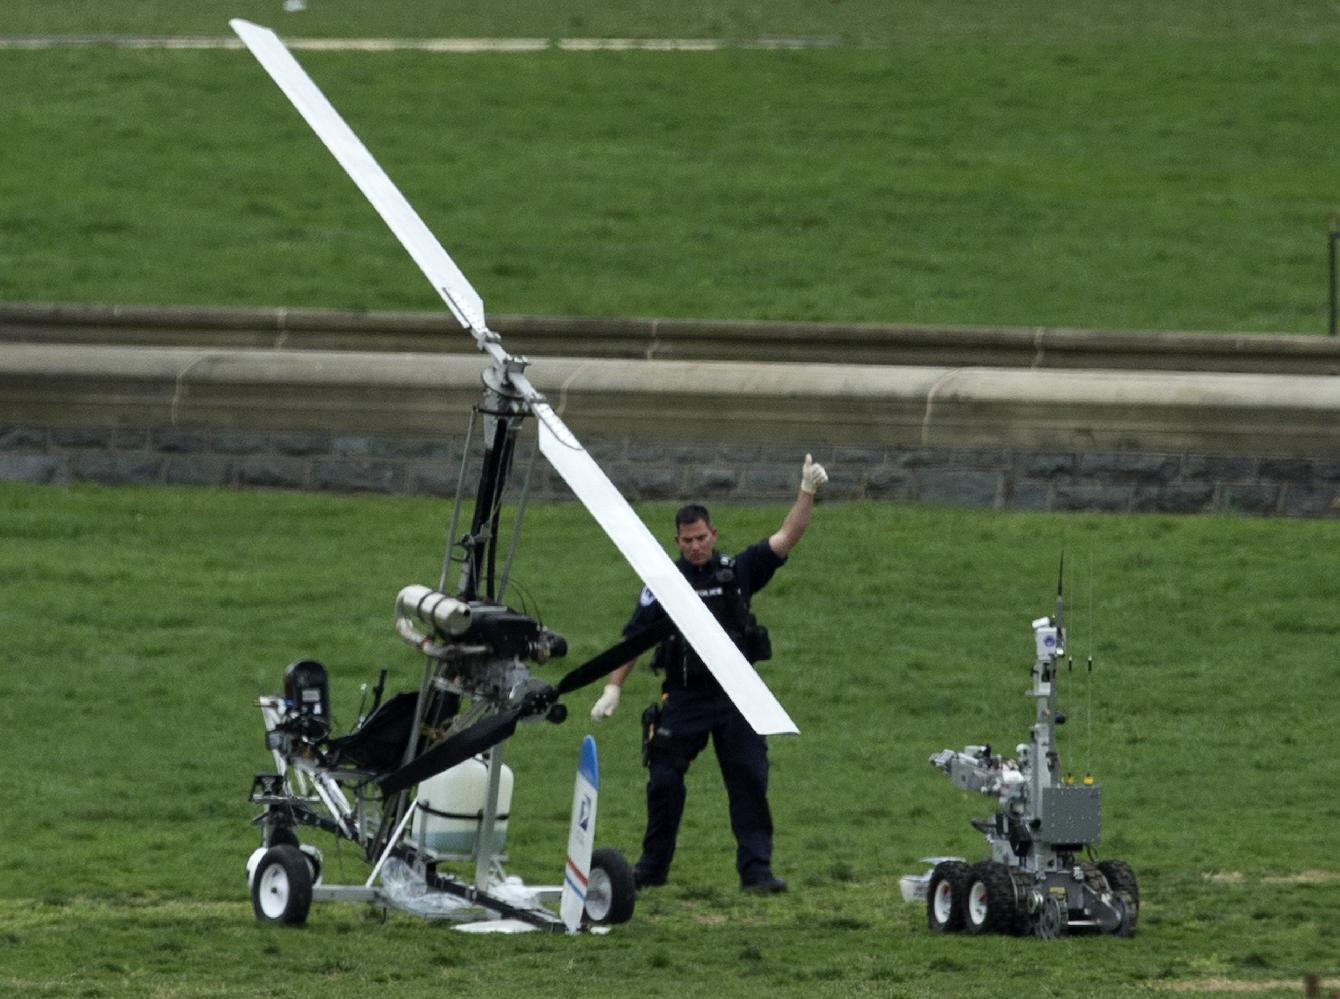 Homeland chief: Gyrocopter came in 'under the radar'